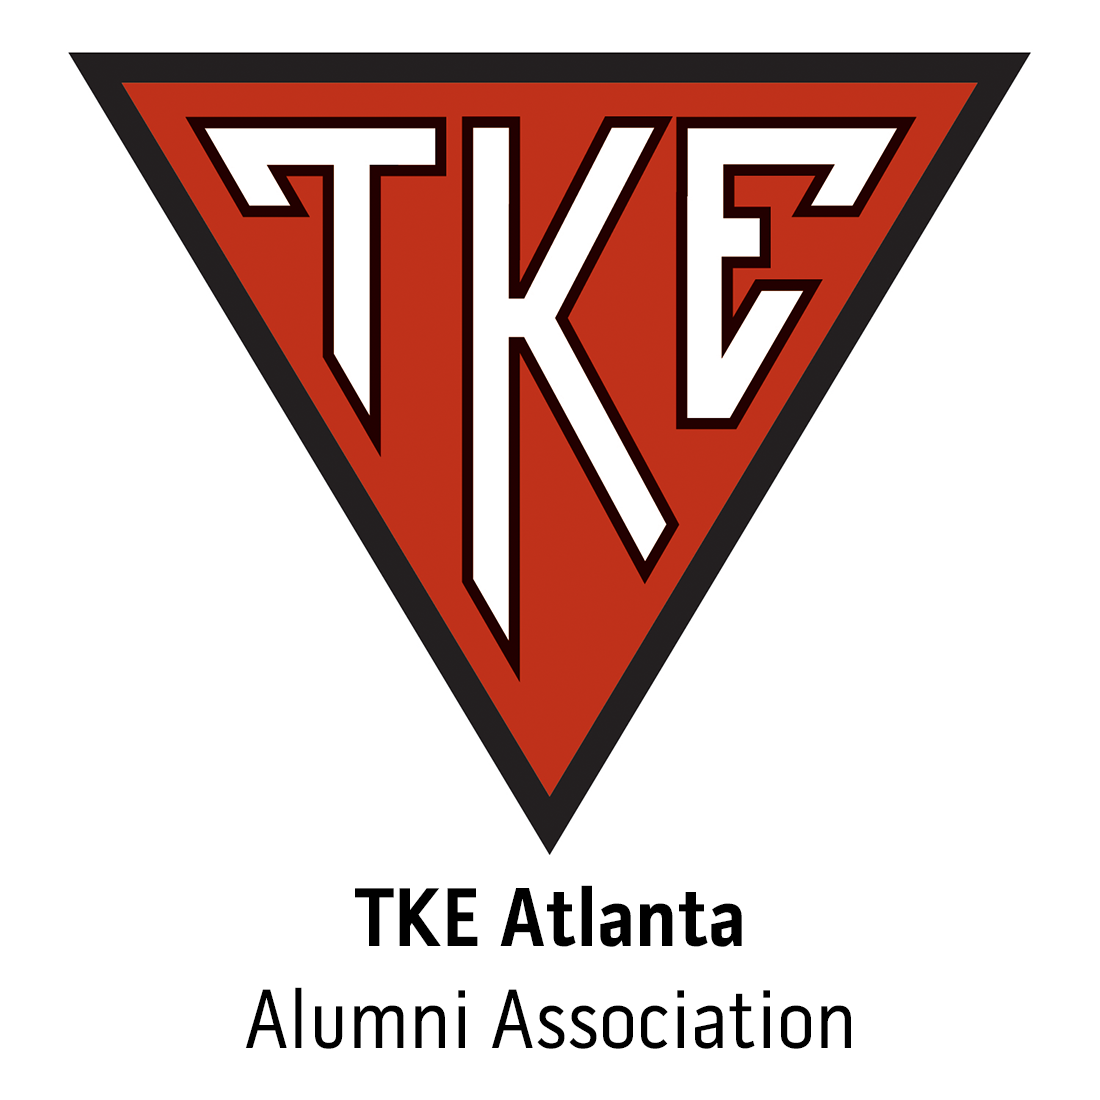 TKE Atlanta Alumni Association for Atlanta, GA